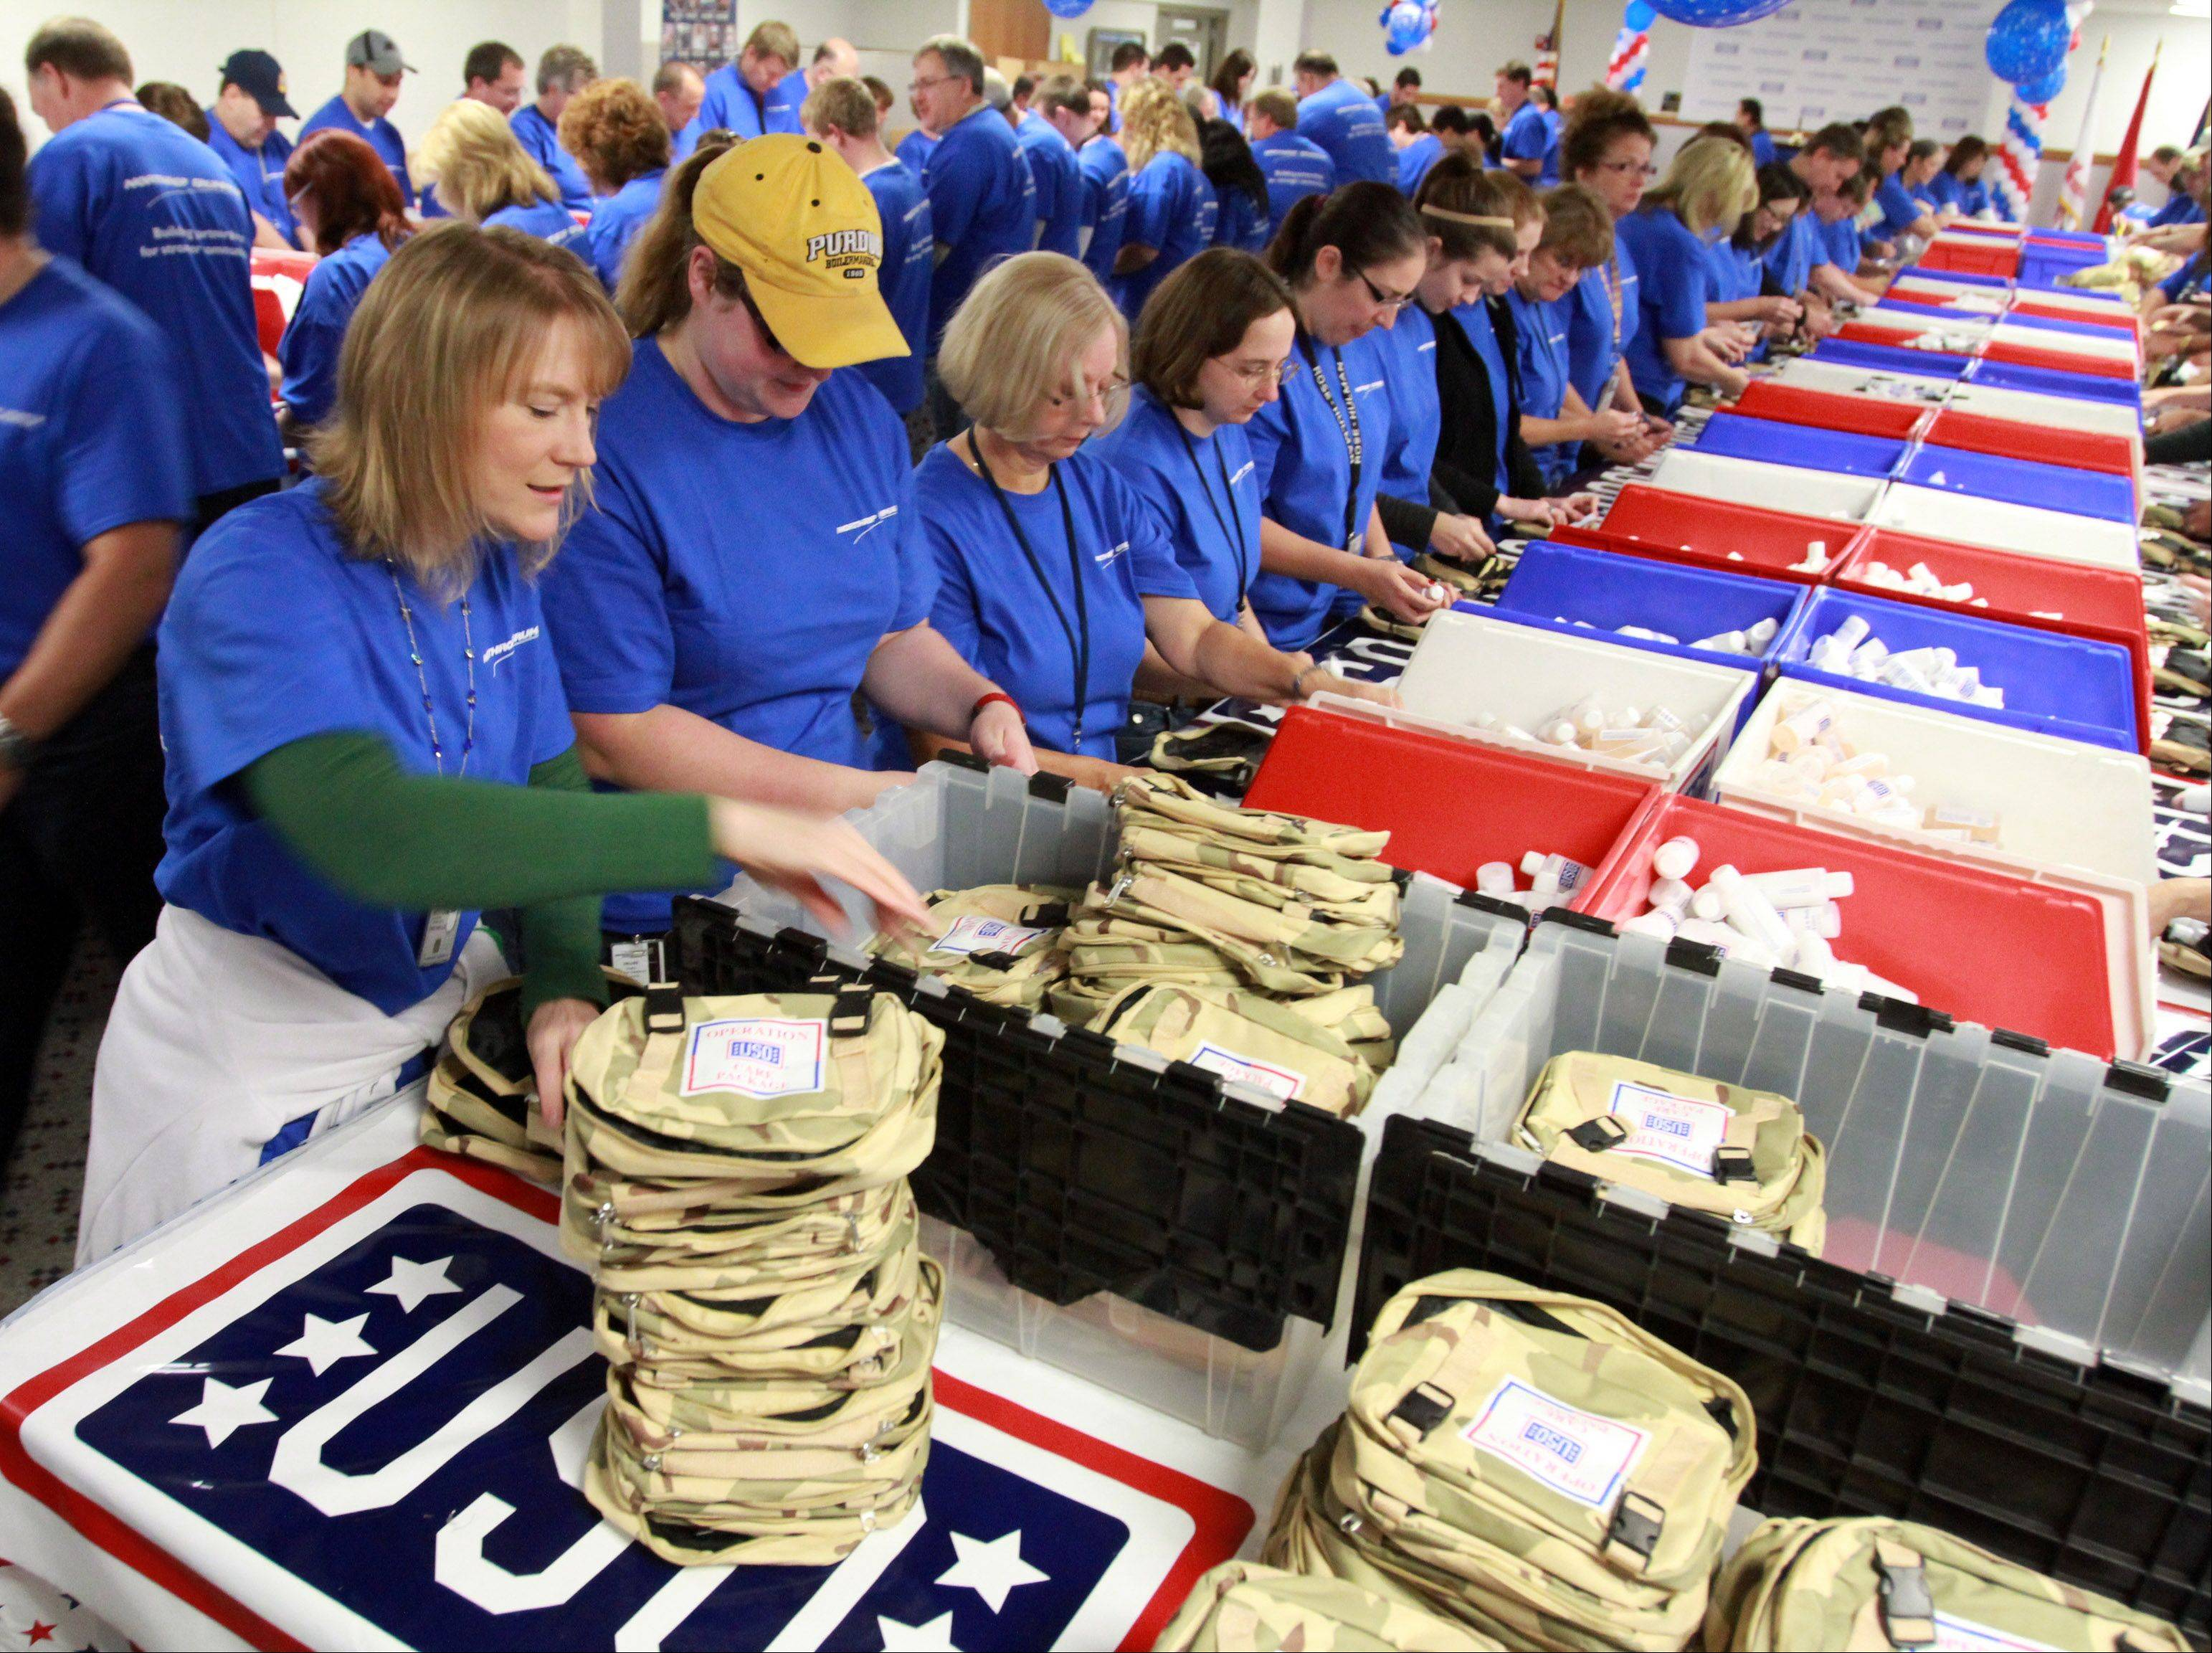 About 150 employees at Northrop Grumman Corp. stuff USO care packages at the company's Rolling Meadows operation on Saturday.